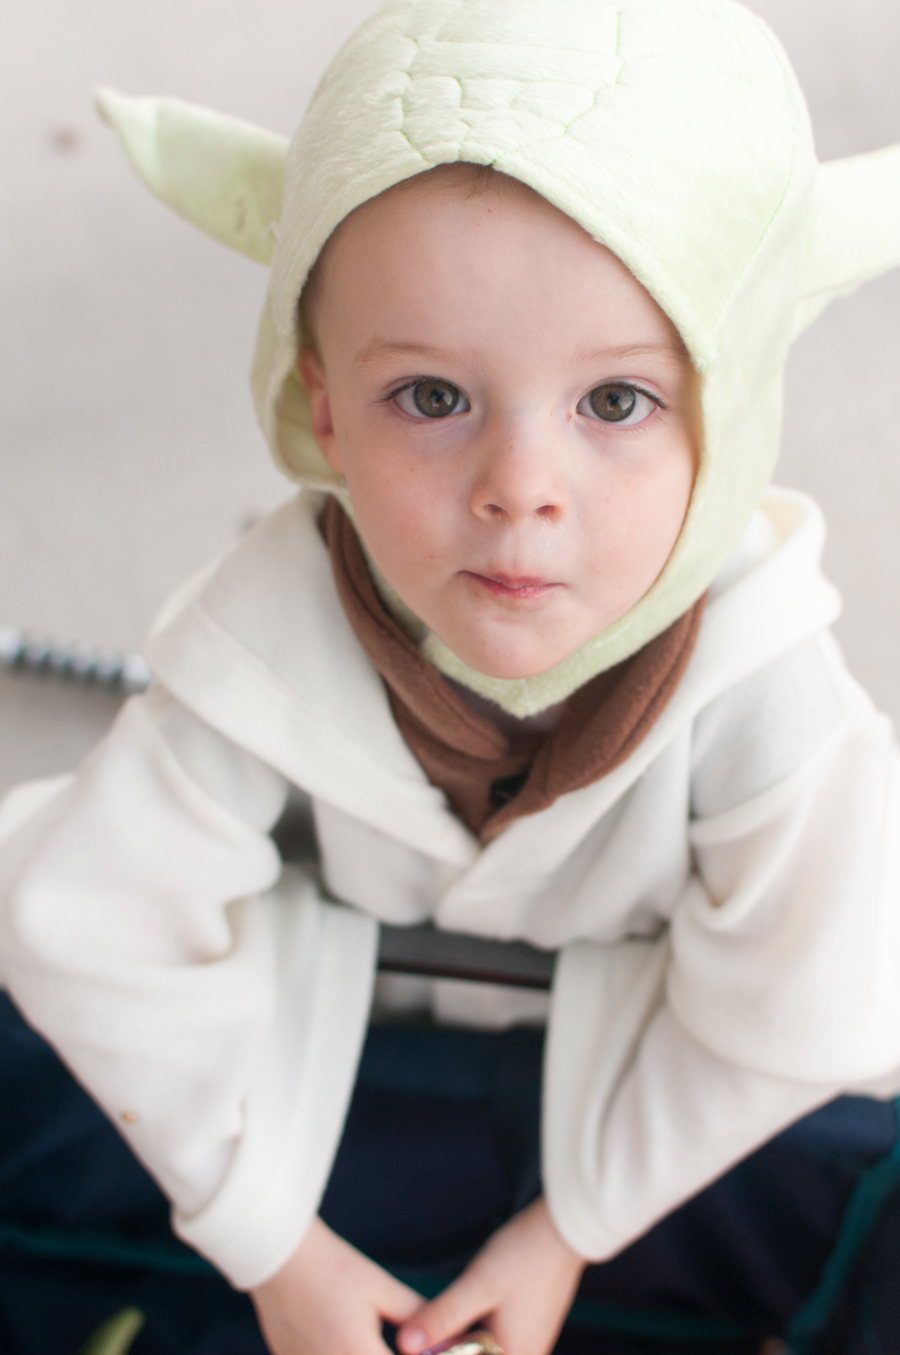 Star Wars Costume - Yoda